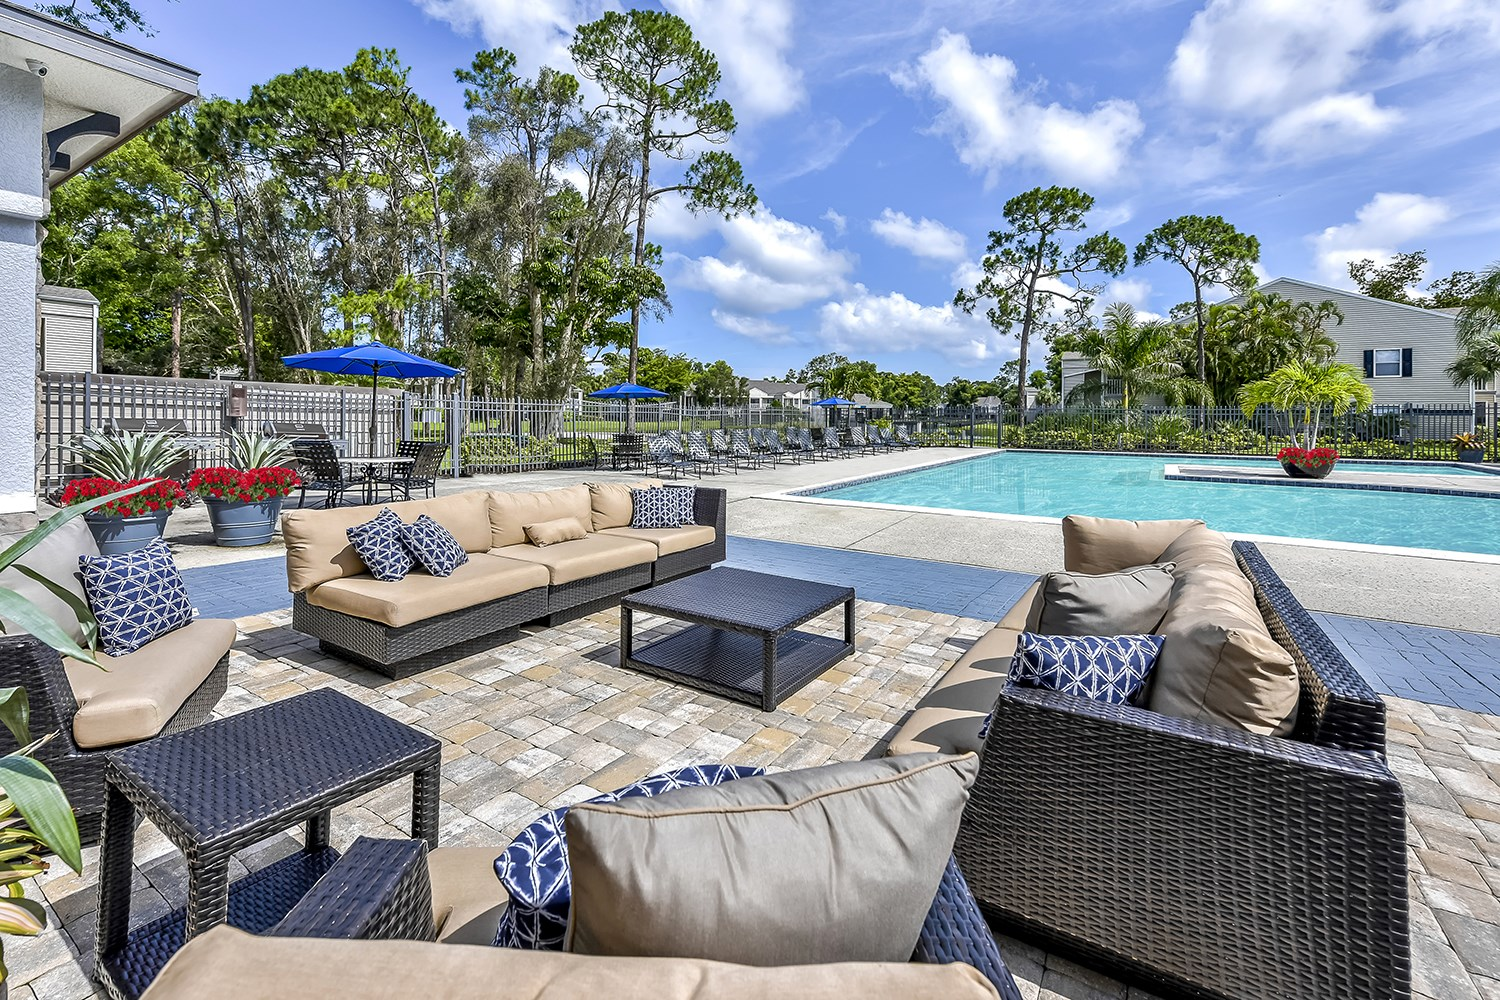 Swimming Pool and Outdoor Lounge at Brantley Pines Apartments in Ft. Myers, FL